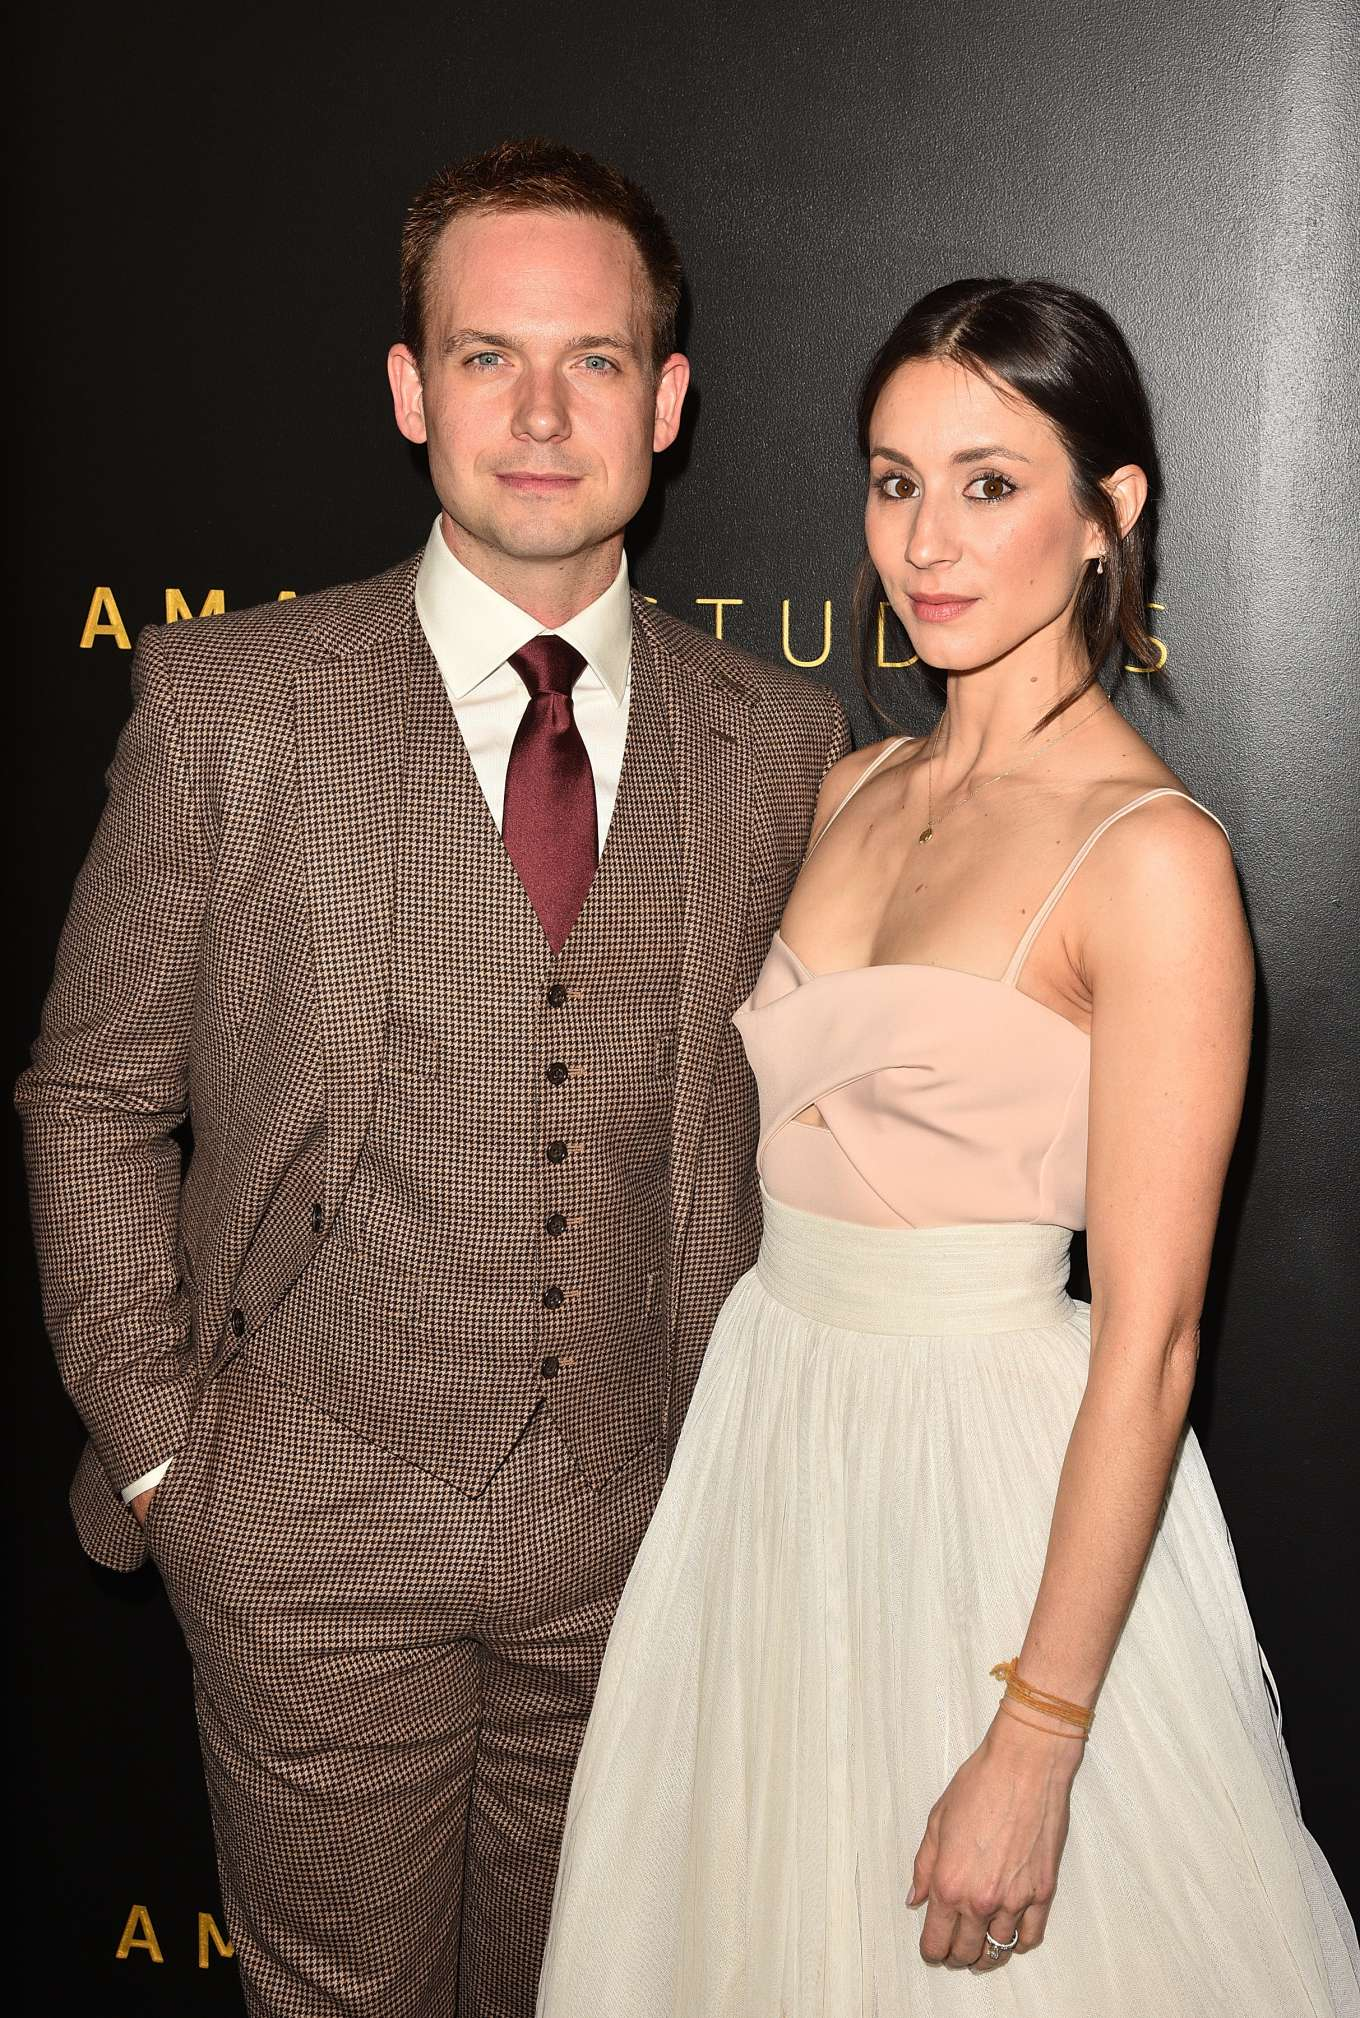 Troian Bellisario and Patrick J. Adams - 2020 Amazon Studios Golden Globes After Party in Beverly Hills